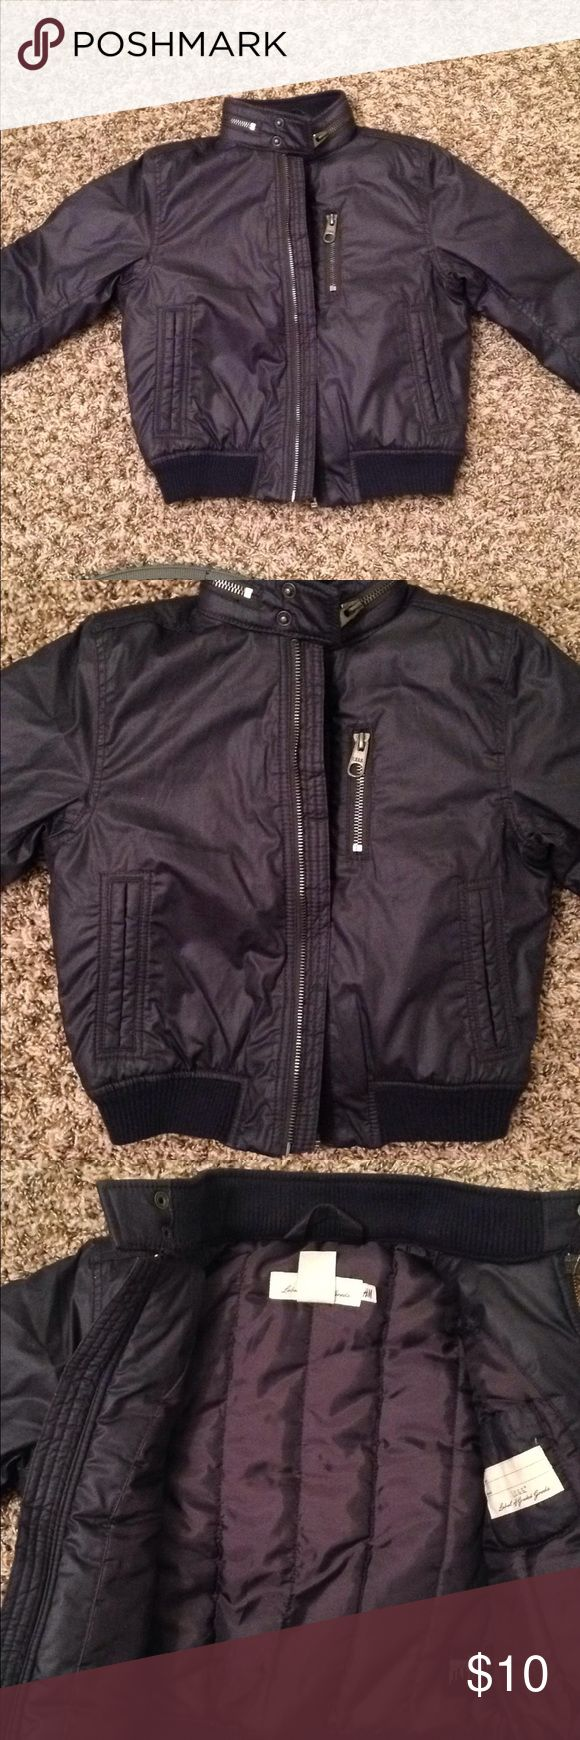 Toddler's Bomber Jacket Size 3T. Brand is L.O.G.G. Purchased from H&M. Dark navy blue bomber jacket. New, without tags! No holes or stains. Smoke free home.  ❤️BUNDLE AND SAVE!❤️ H&M Jackets & Coats